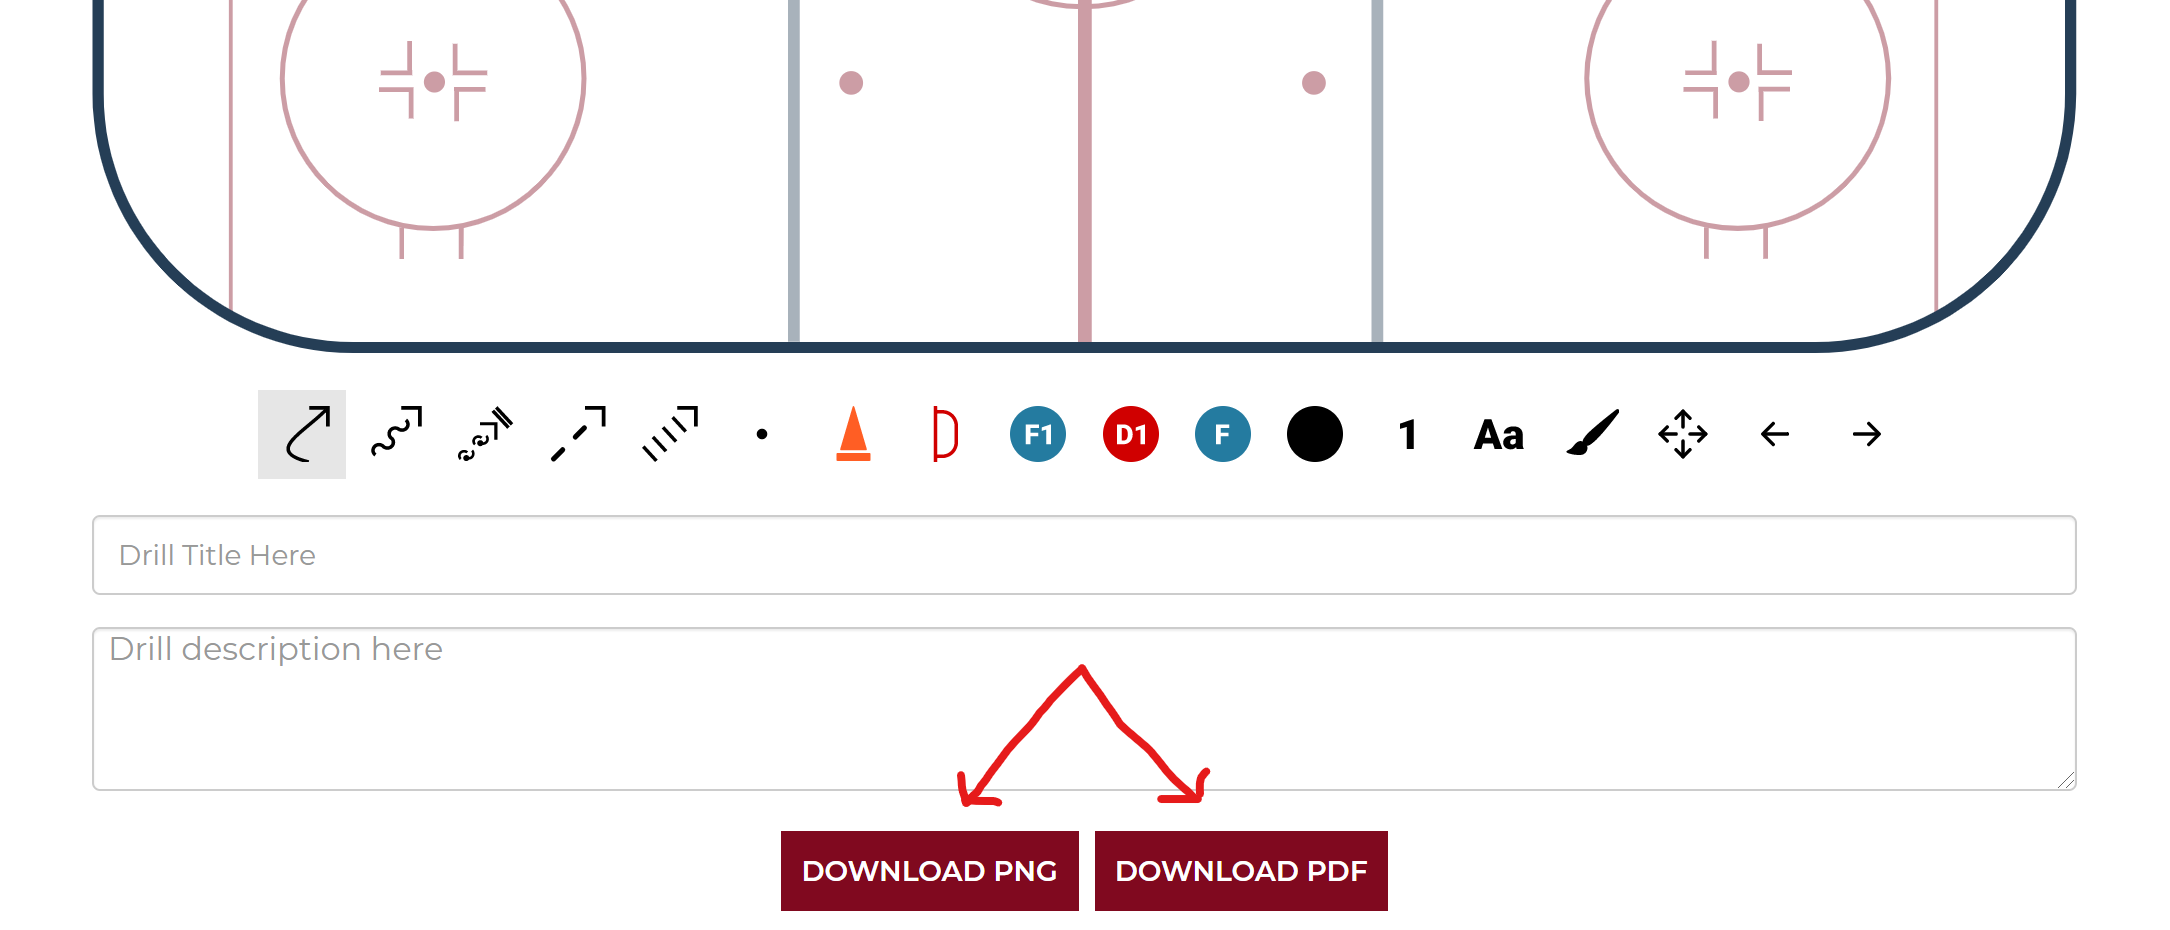 After creating your own hockey drills with the free drawing tool then use the buttons to download as a pdf or png file.